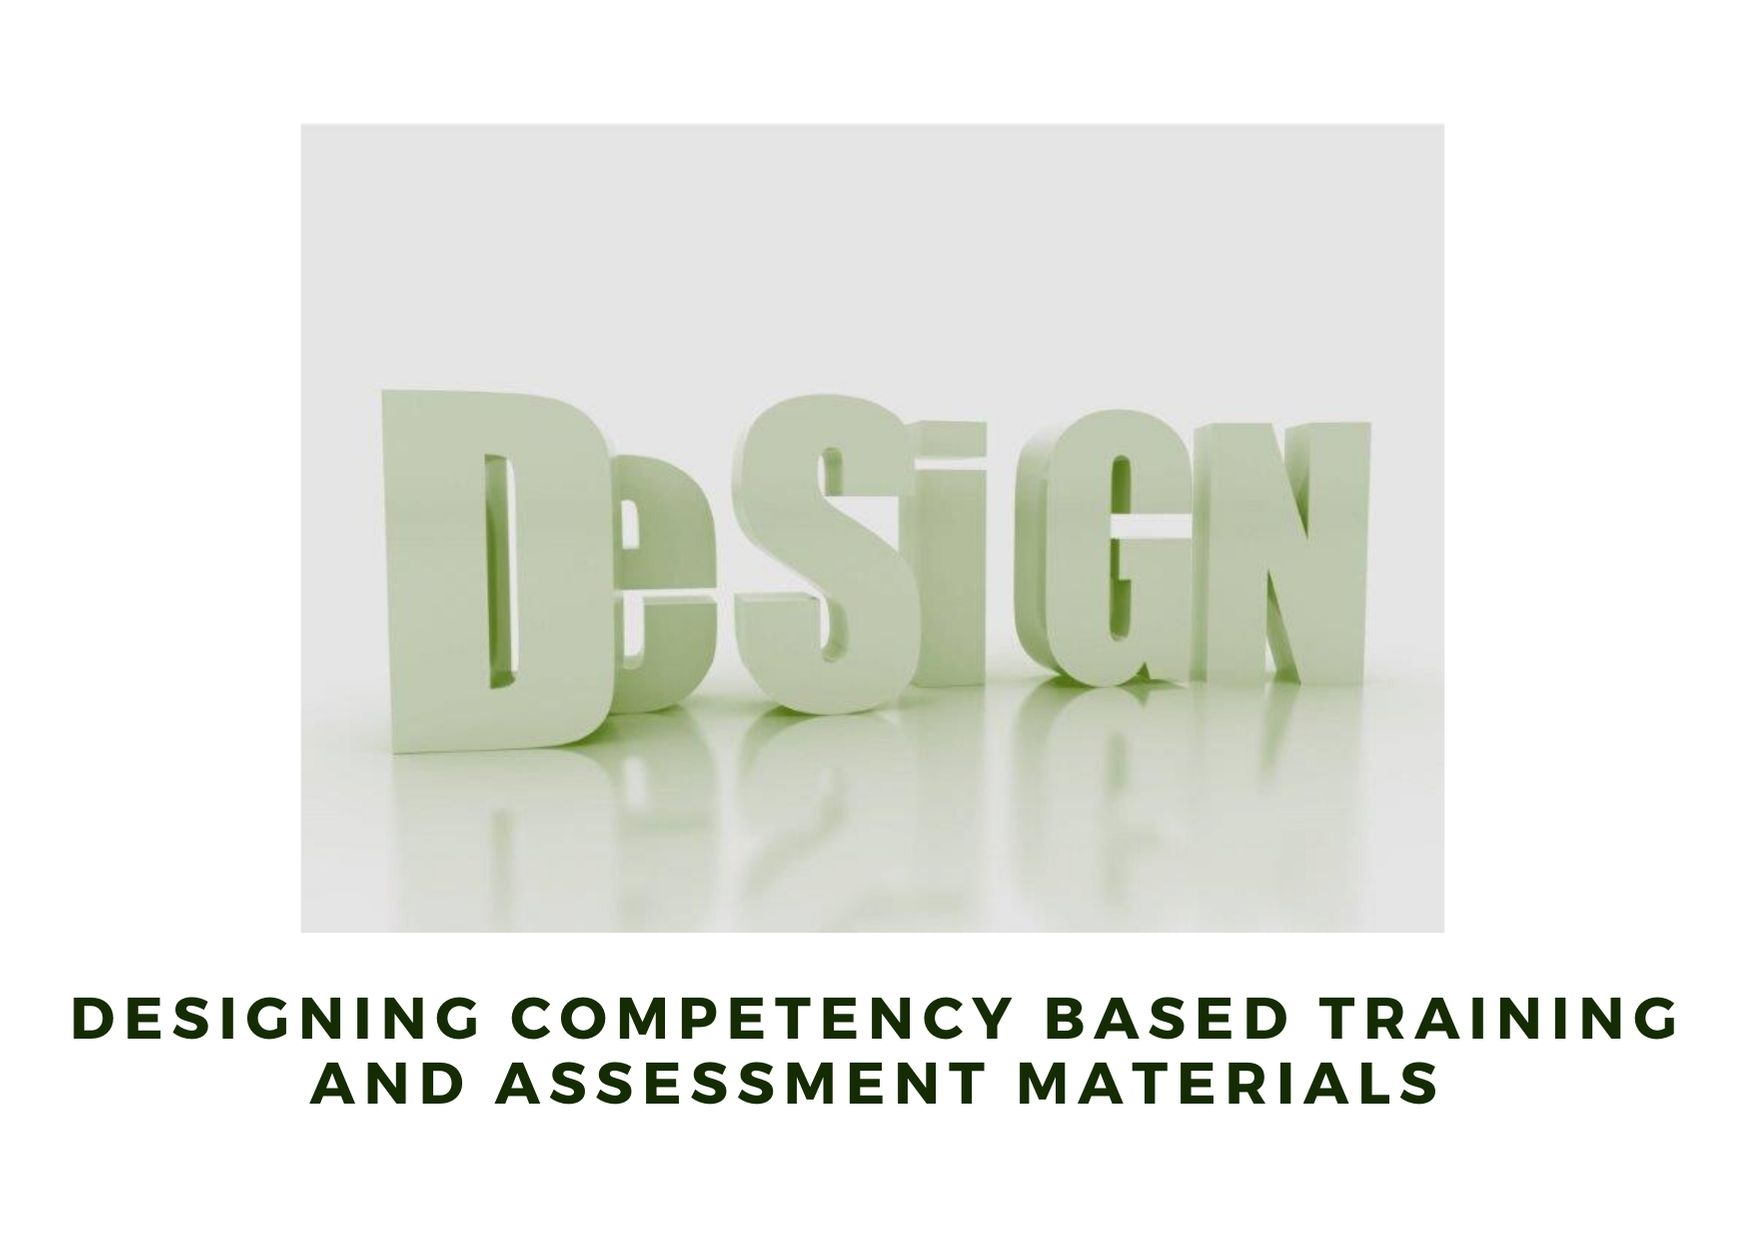 Designing competency based training and assessment materials